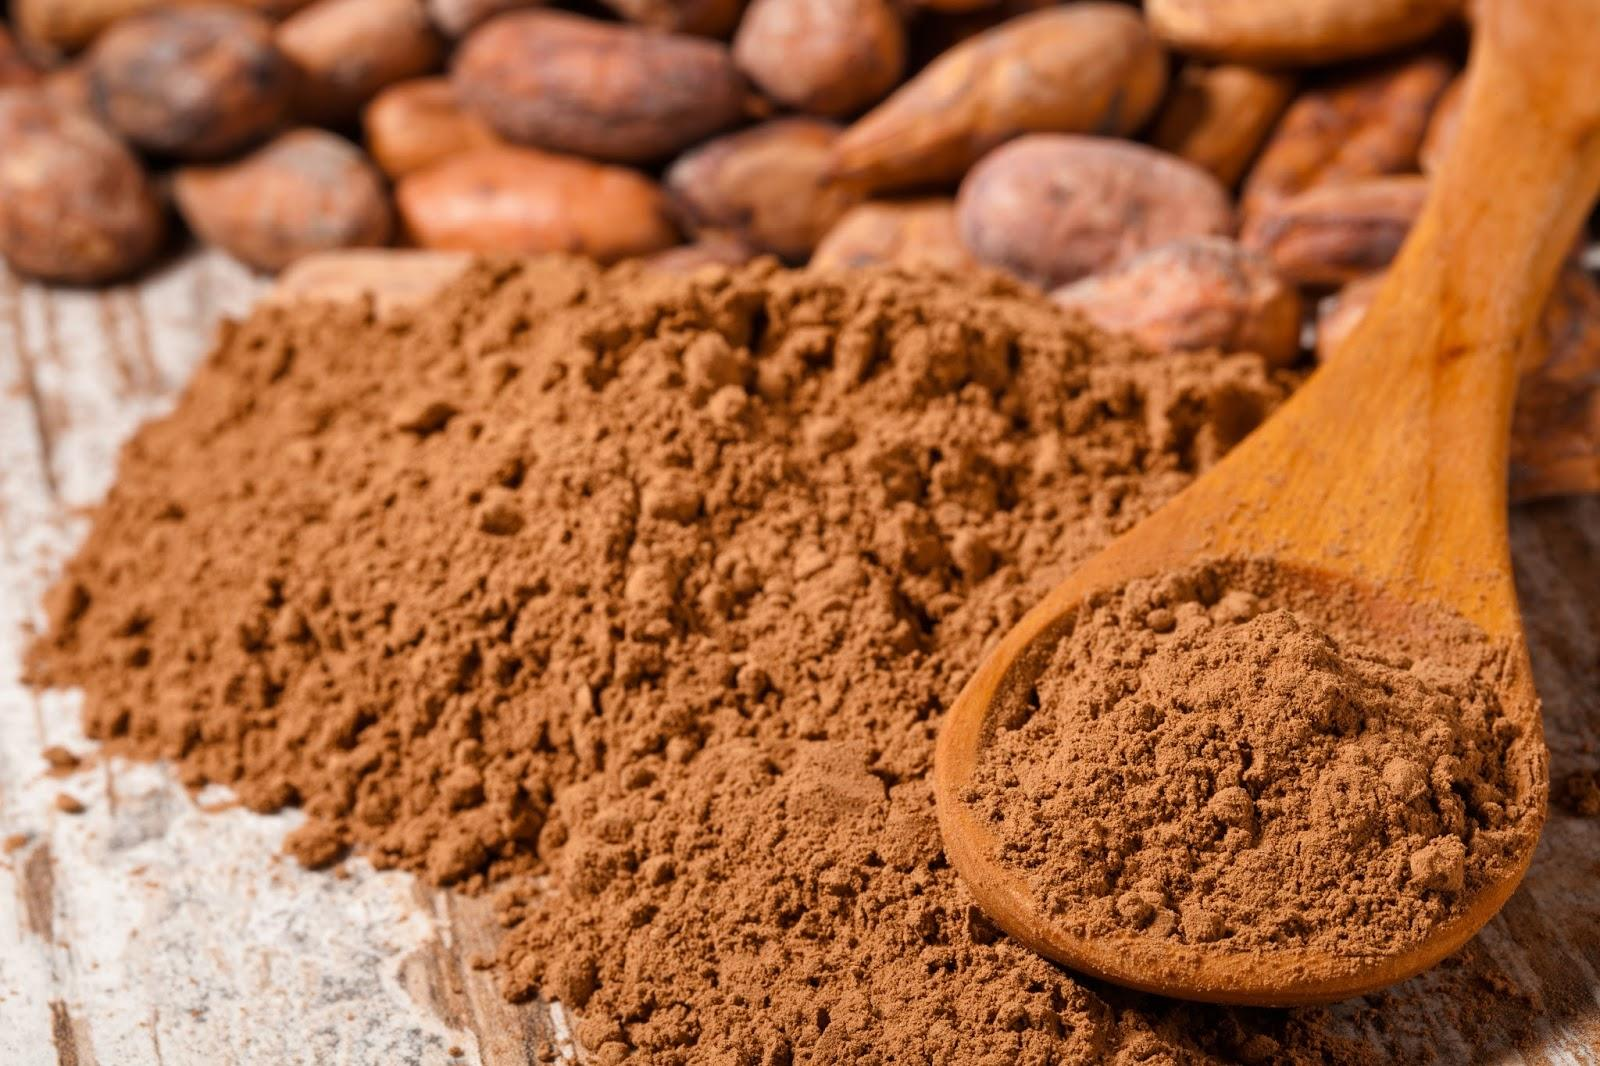 Antioxidants, magnesium, iron, chromium, manganese, zinc, copper, vitamin c, omega-6 fatty acids, phenylethylamines, anandamide, tryptophan, serotonin, fiber…a few nutrient dense offerings in just one tablespoon of raw cacao powder!